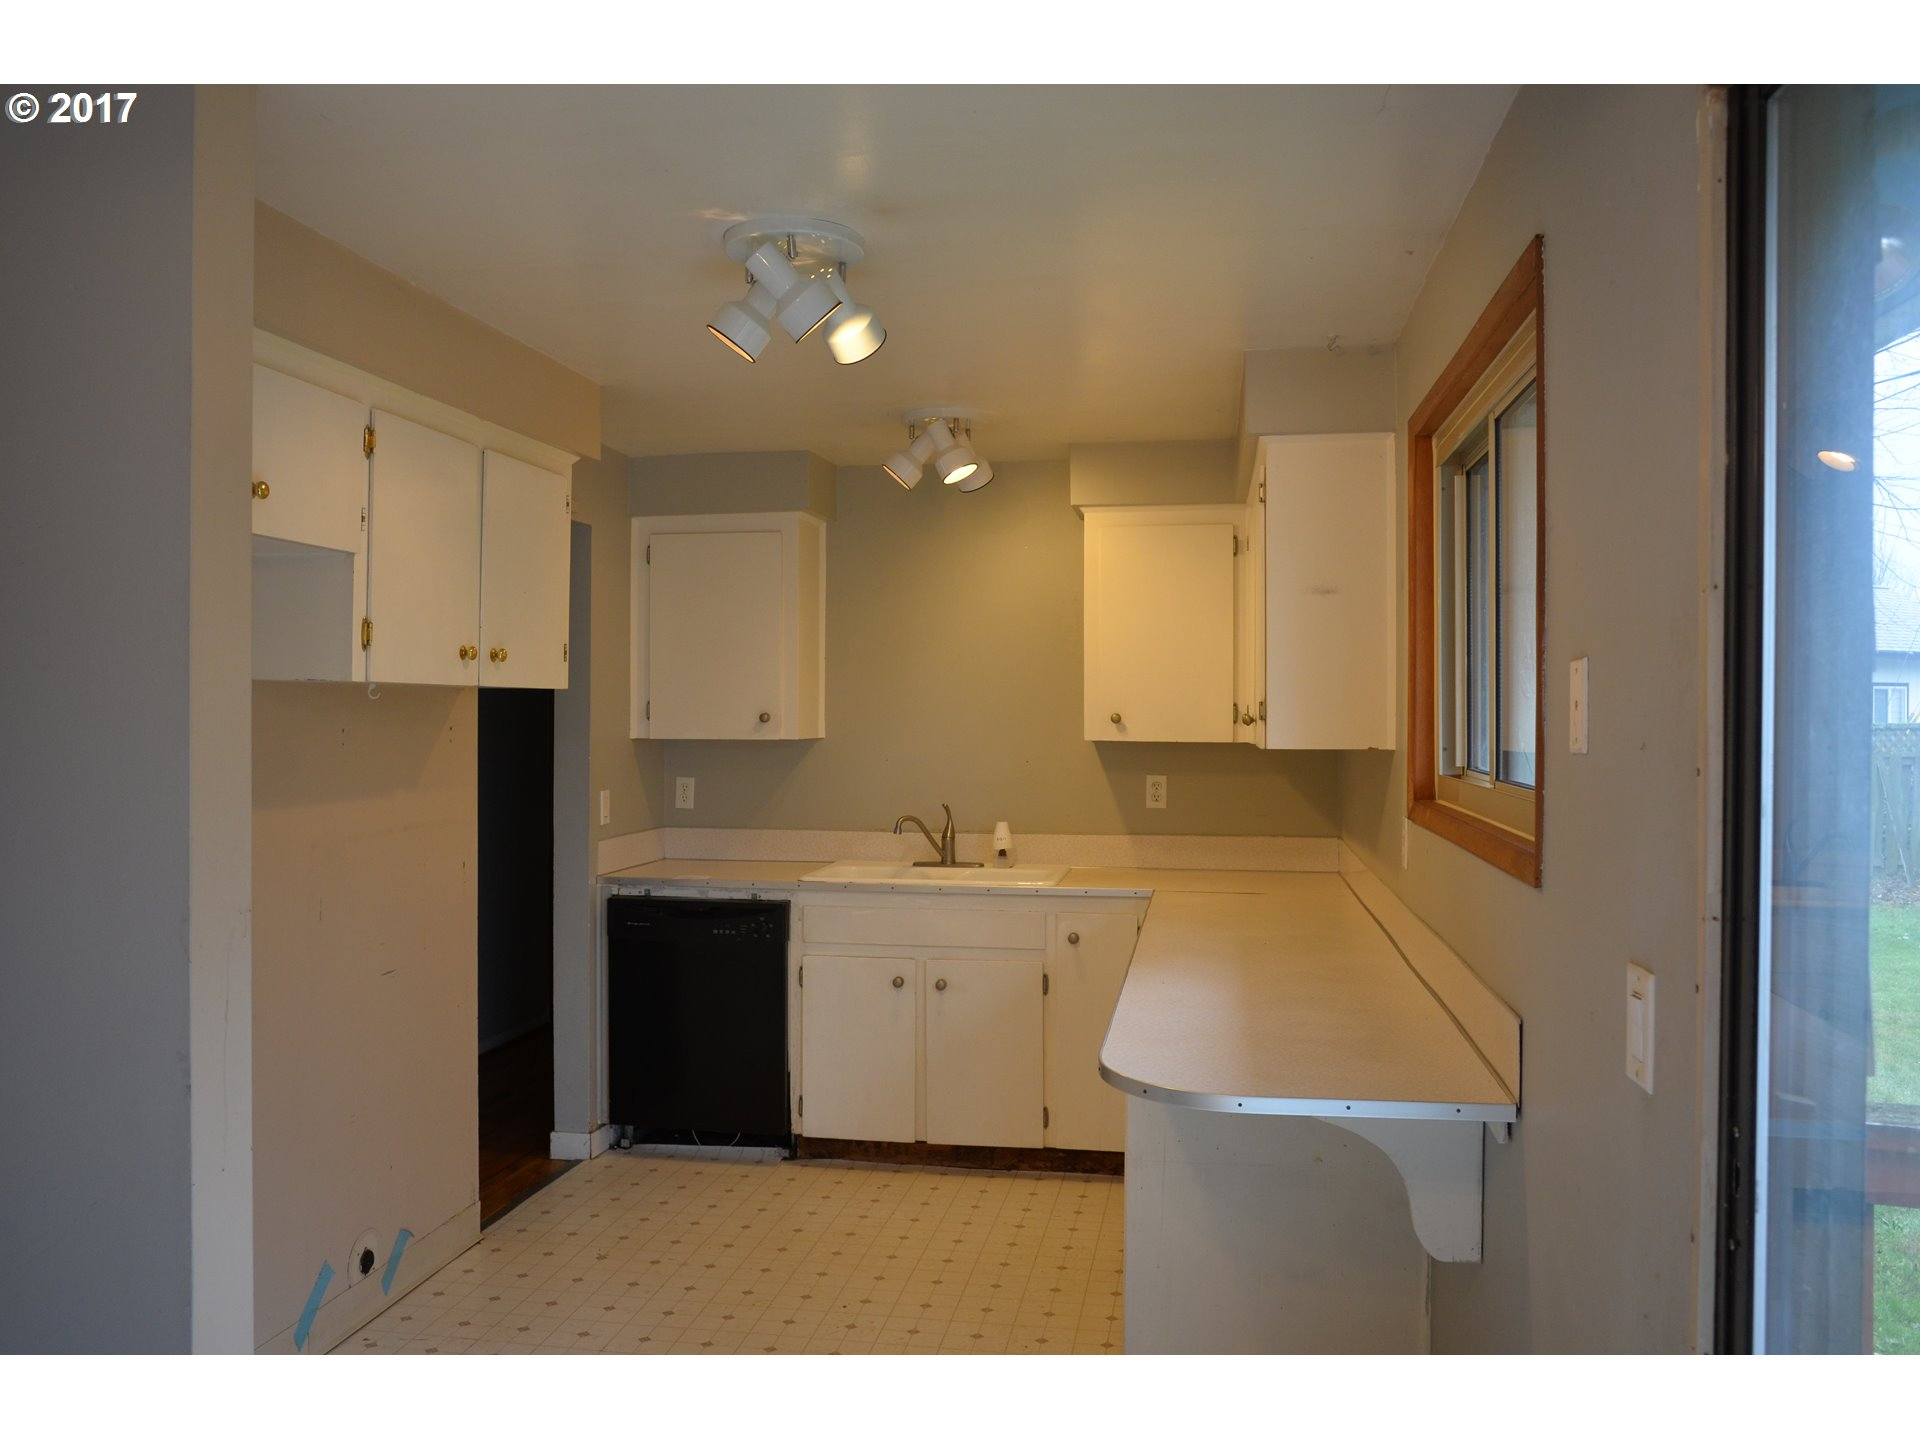 1000 sq. ft 3 bedrooms 1 bathrooms  House ,Portland, OR